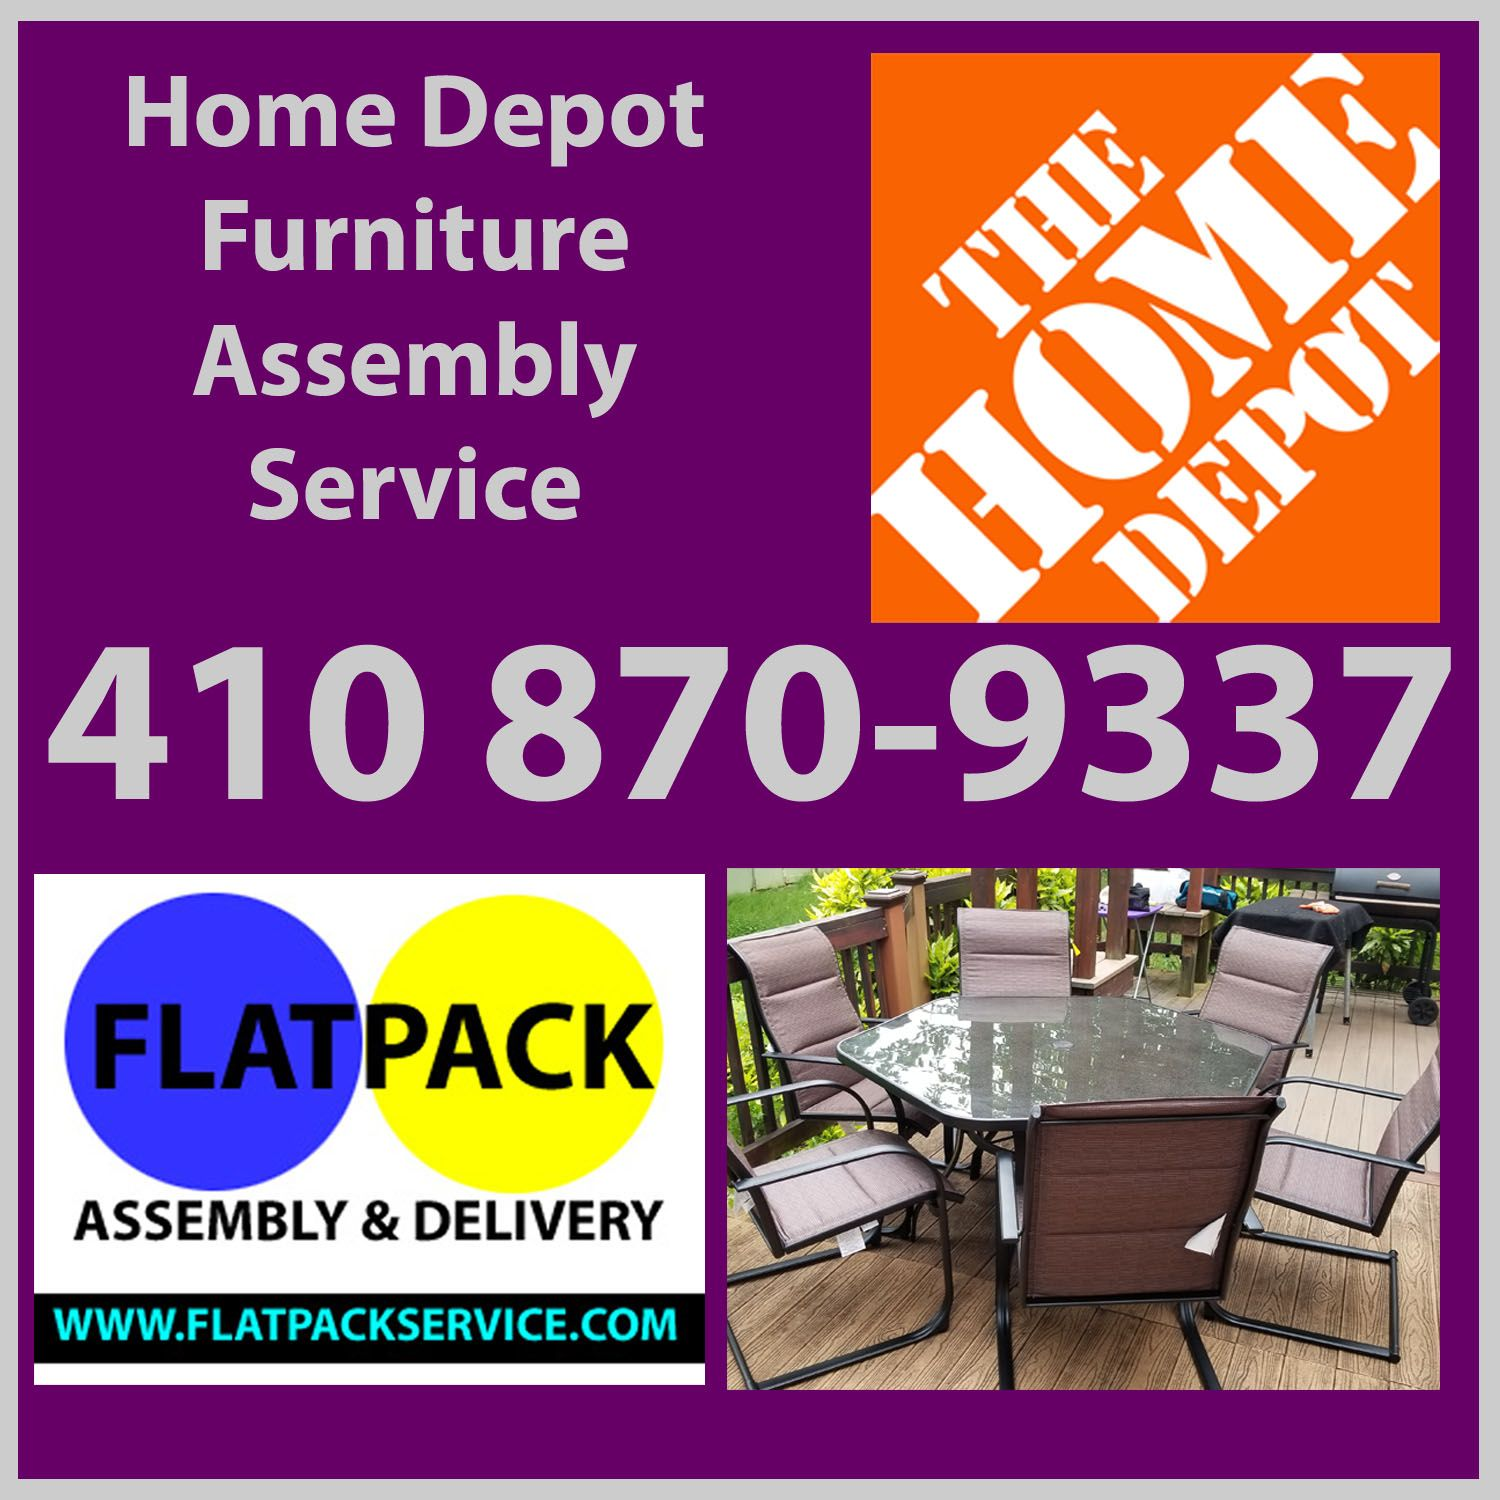 1 Best Home Depot Furniture Assembly Service In Bowie Md 301 971 7219 Flatpack Assembly Furniture Assembly Flat Pack Furniture Gazebo Assembly